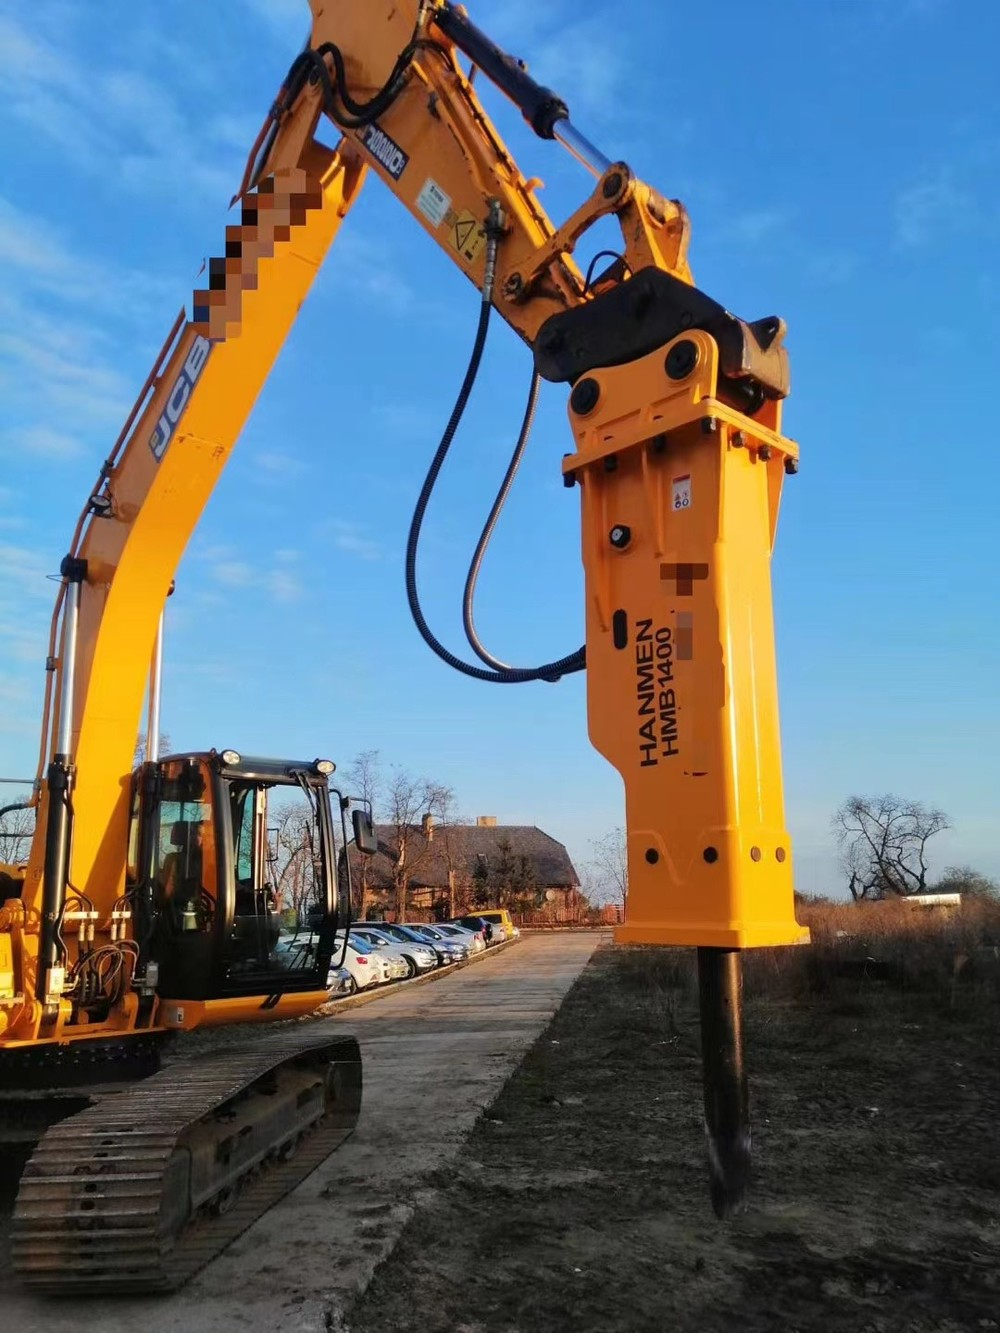 SB81 HMB1350 HMB1400 Korea Hydraulic Hammer Breaker for excavator from China Yantai factory